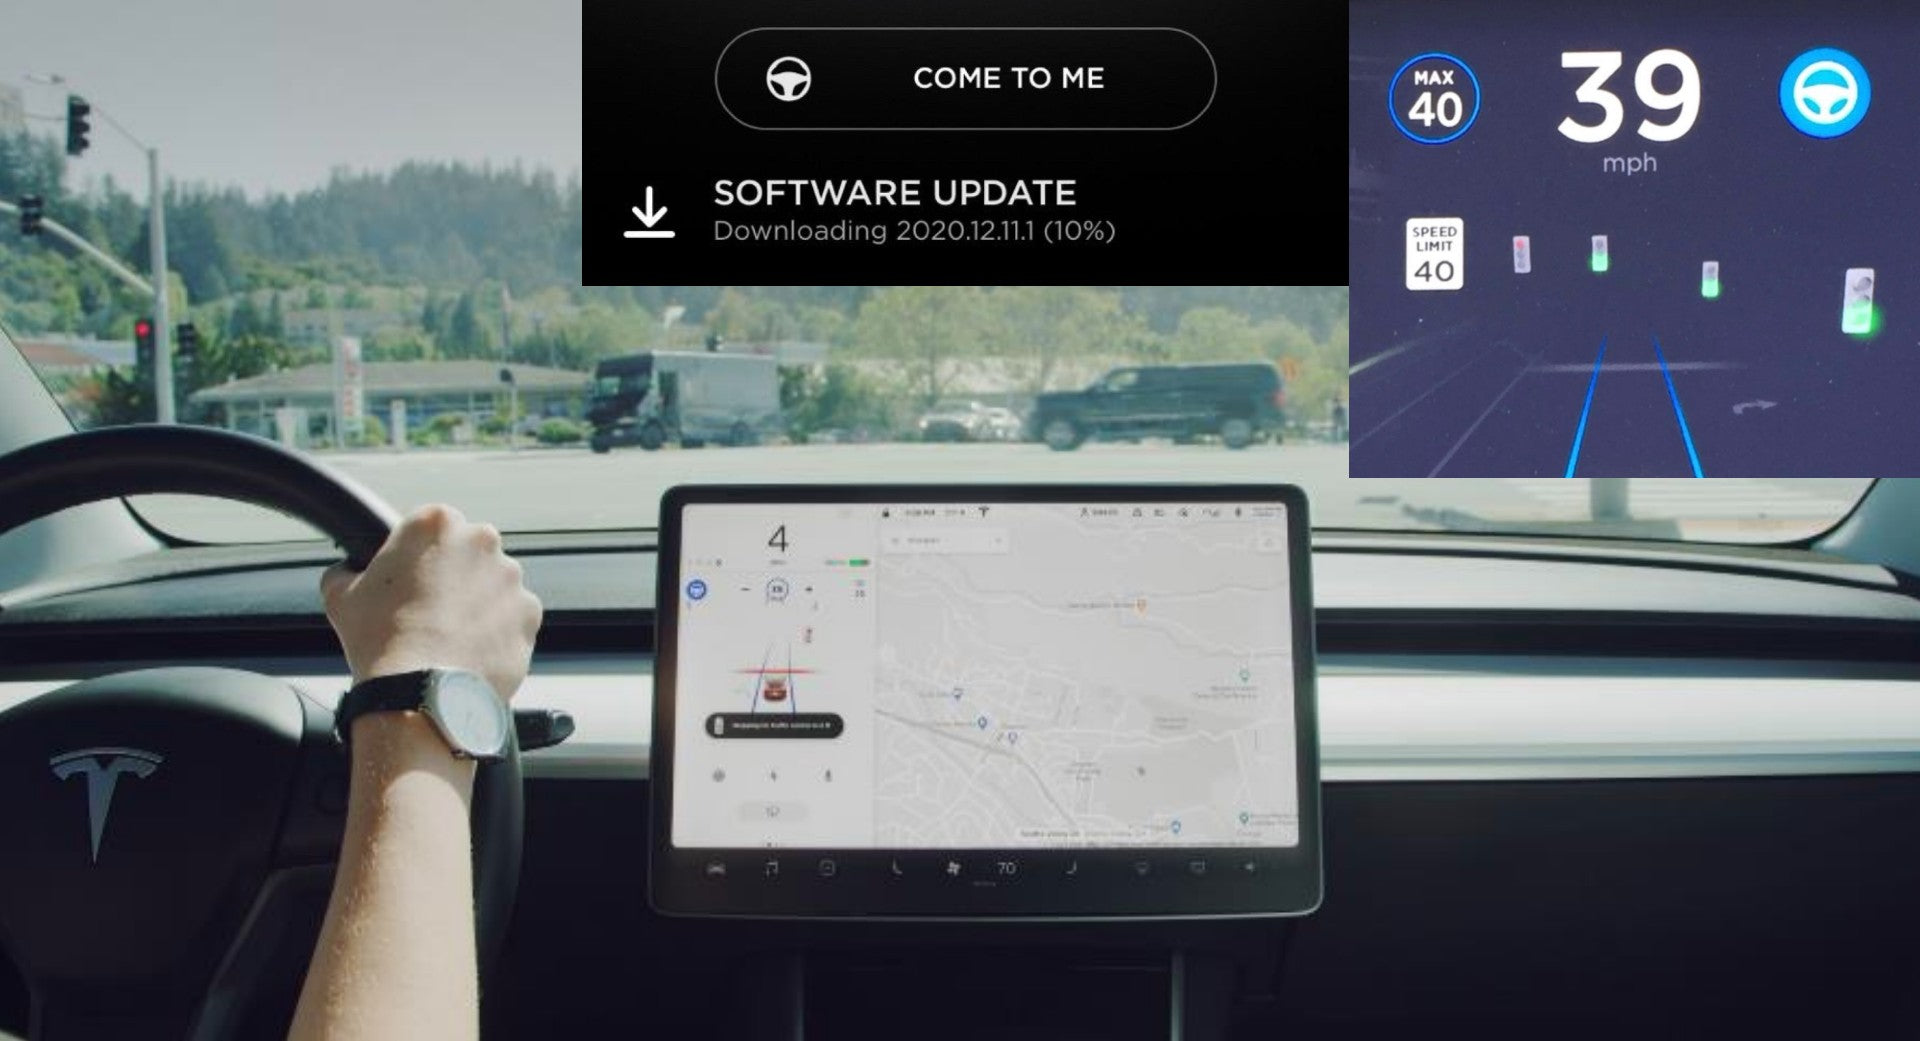 Tesla-2020.12.11.1-OTA-Software-Update